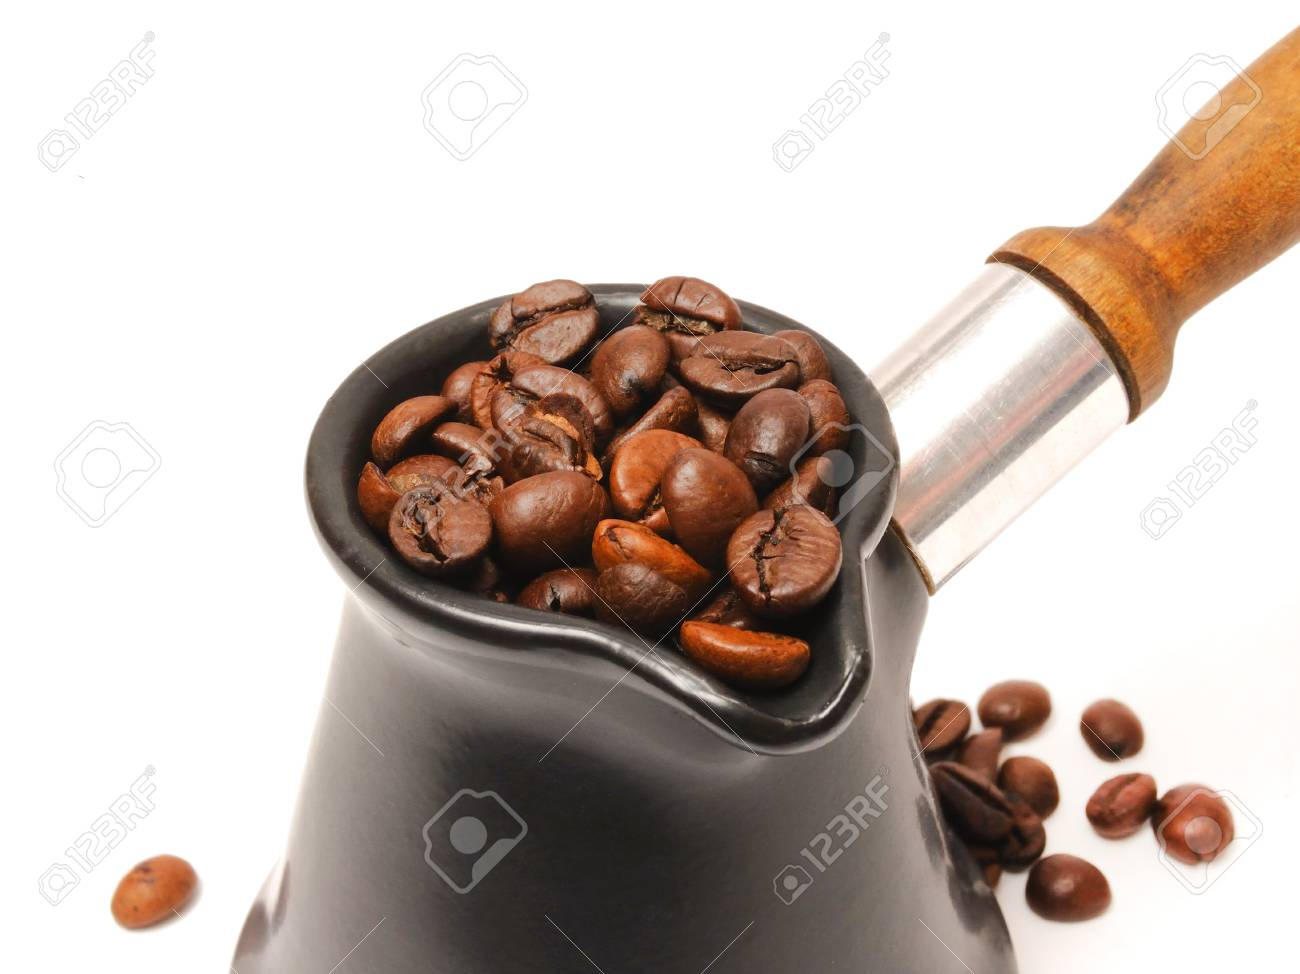 Coffee in a turk with coffee beans background Stock Photo - 9553530